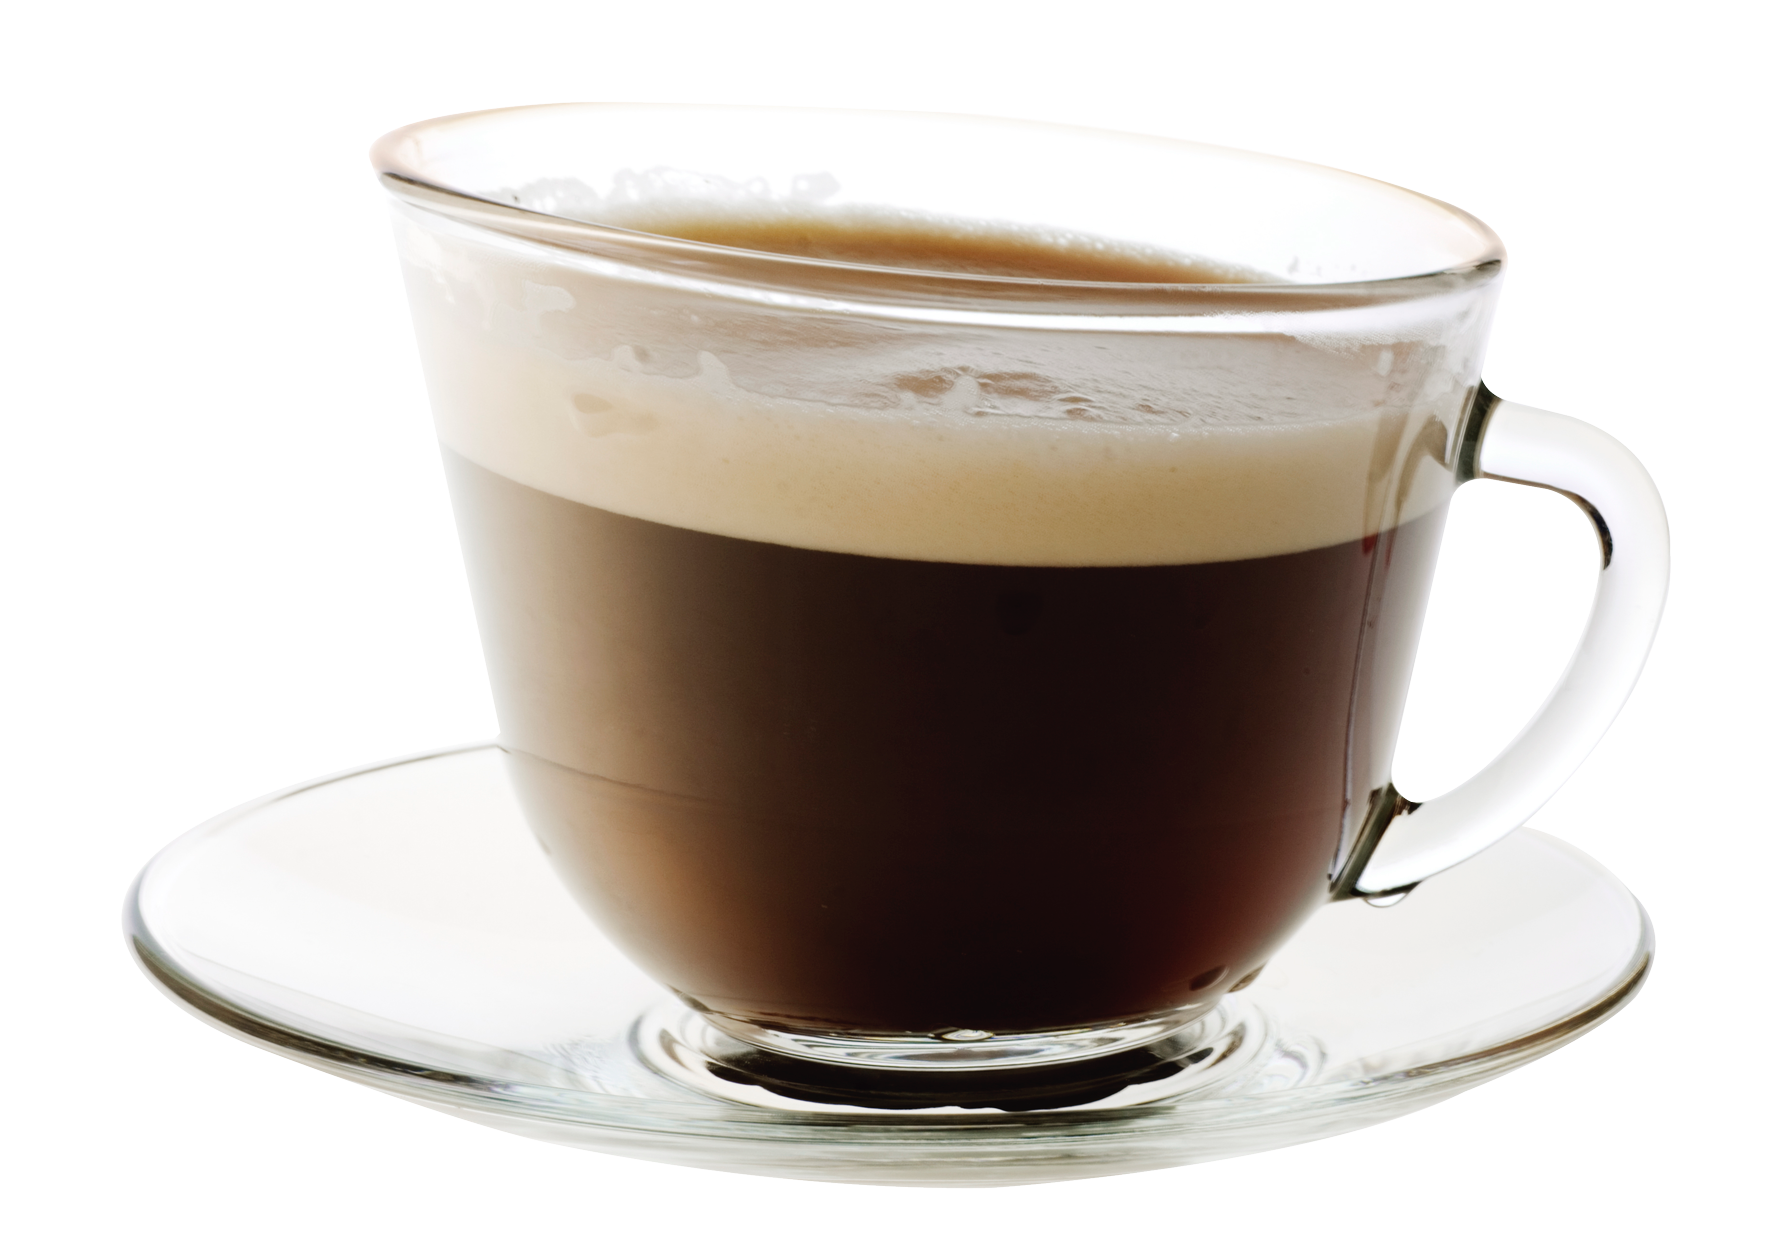 coffee cup and saucer png image purepng free transparent cc0 png